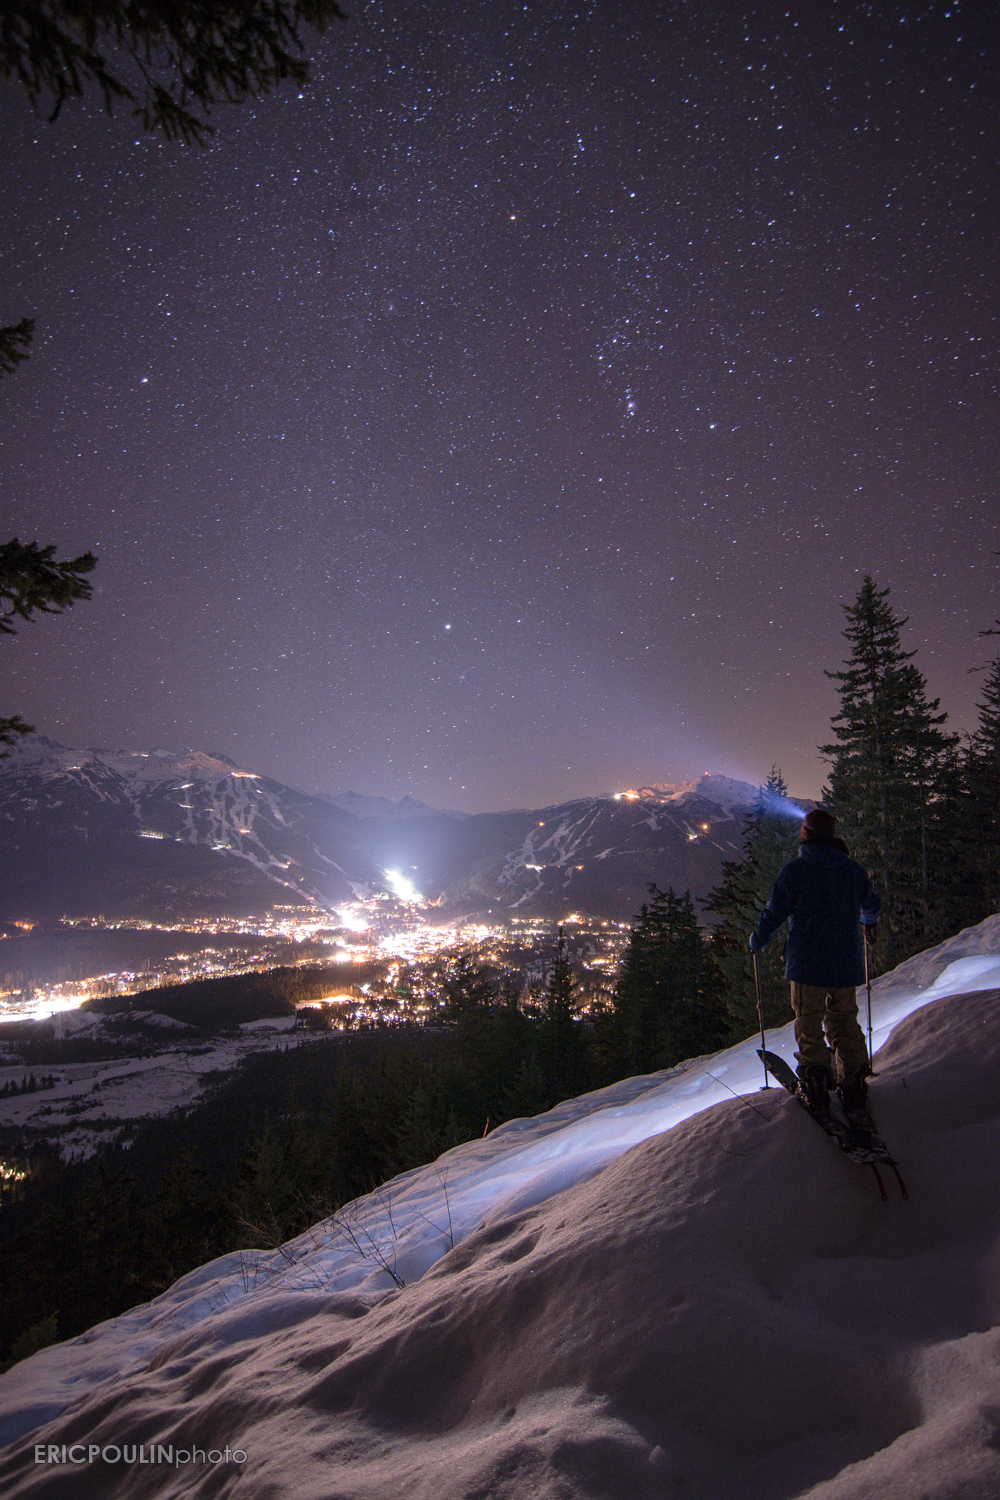 Self-portrait under the stars looking out at Whistler and Blackcomb Mountains